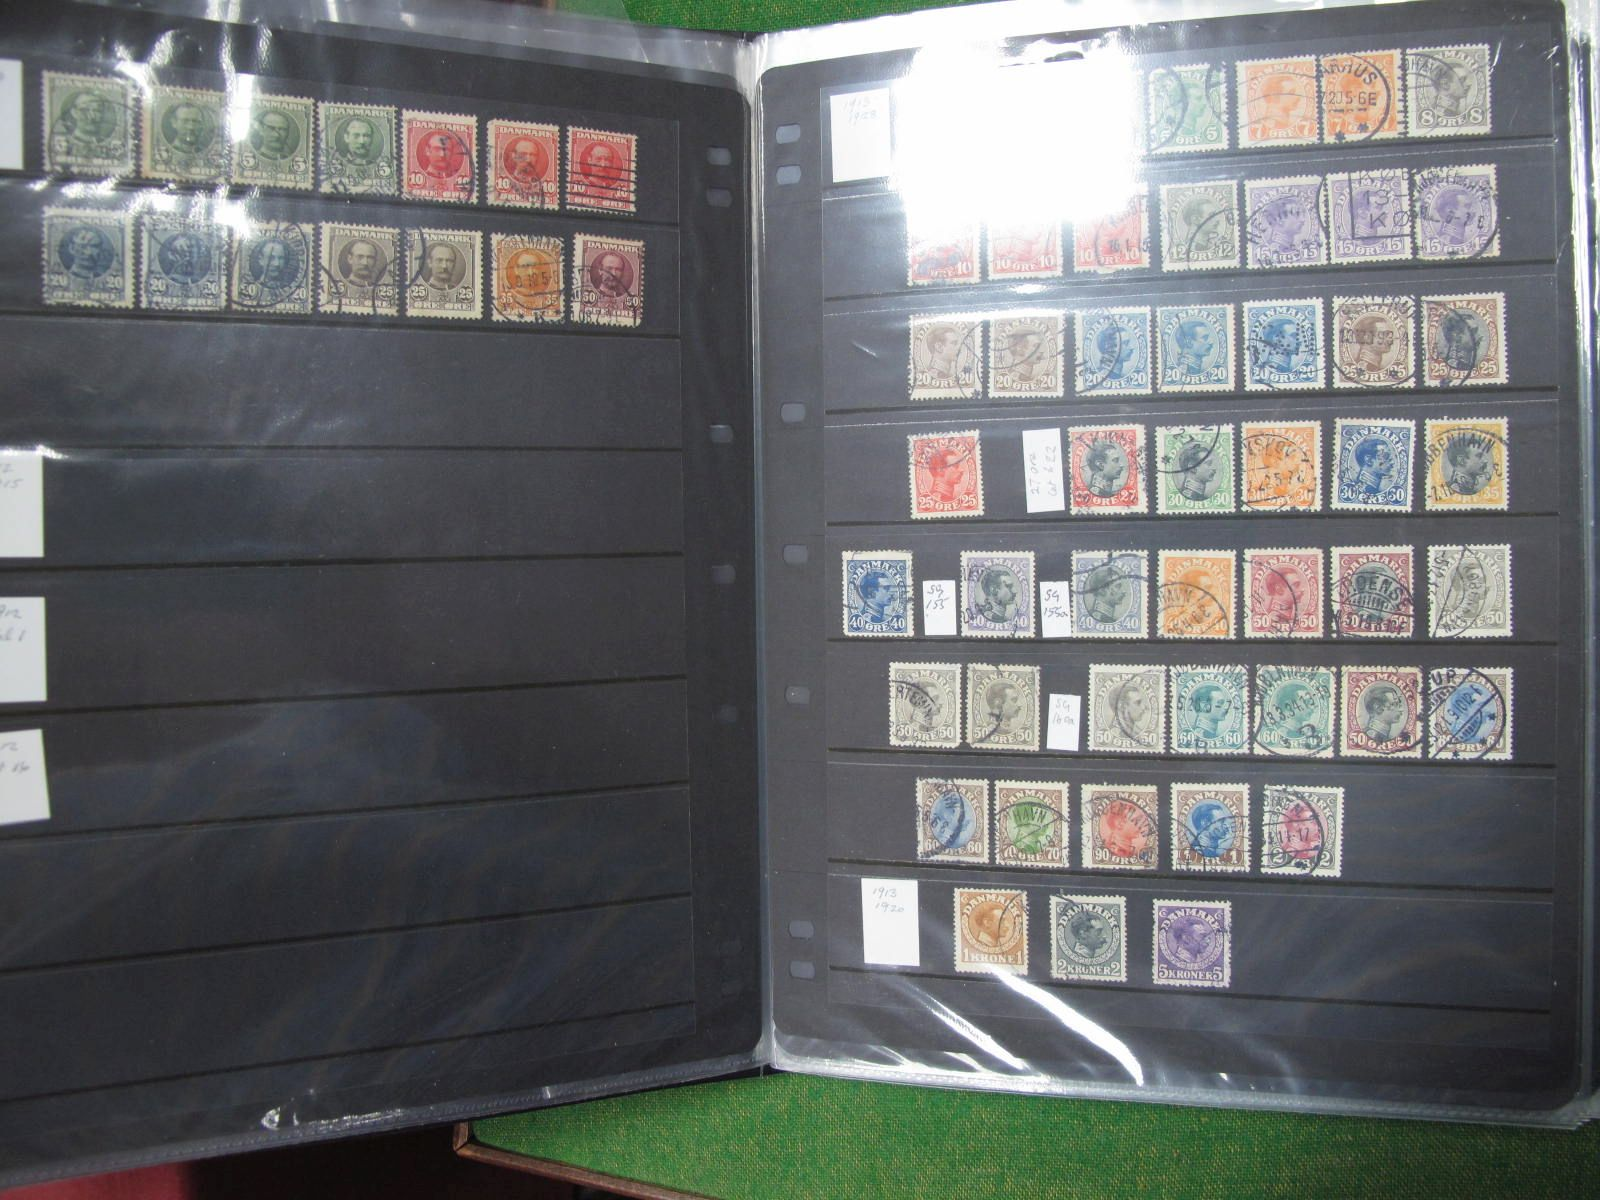 Denmark Collection of Mainly Used Stamps, from 1854 to 2001, mixed condition of earlier stamps,